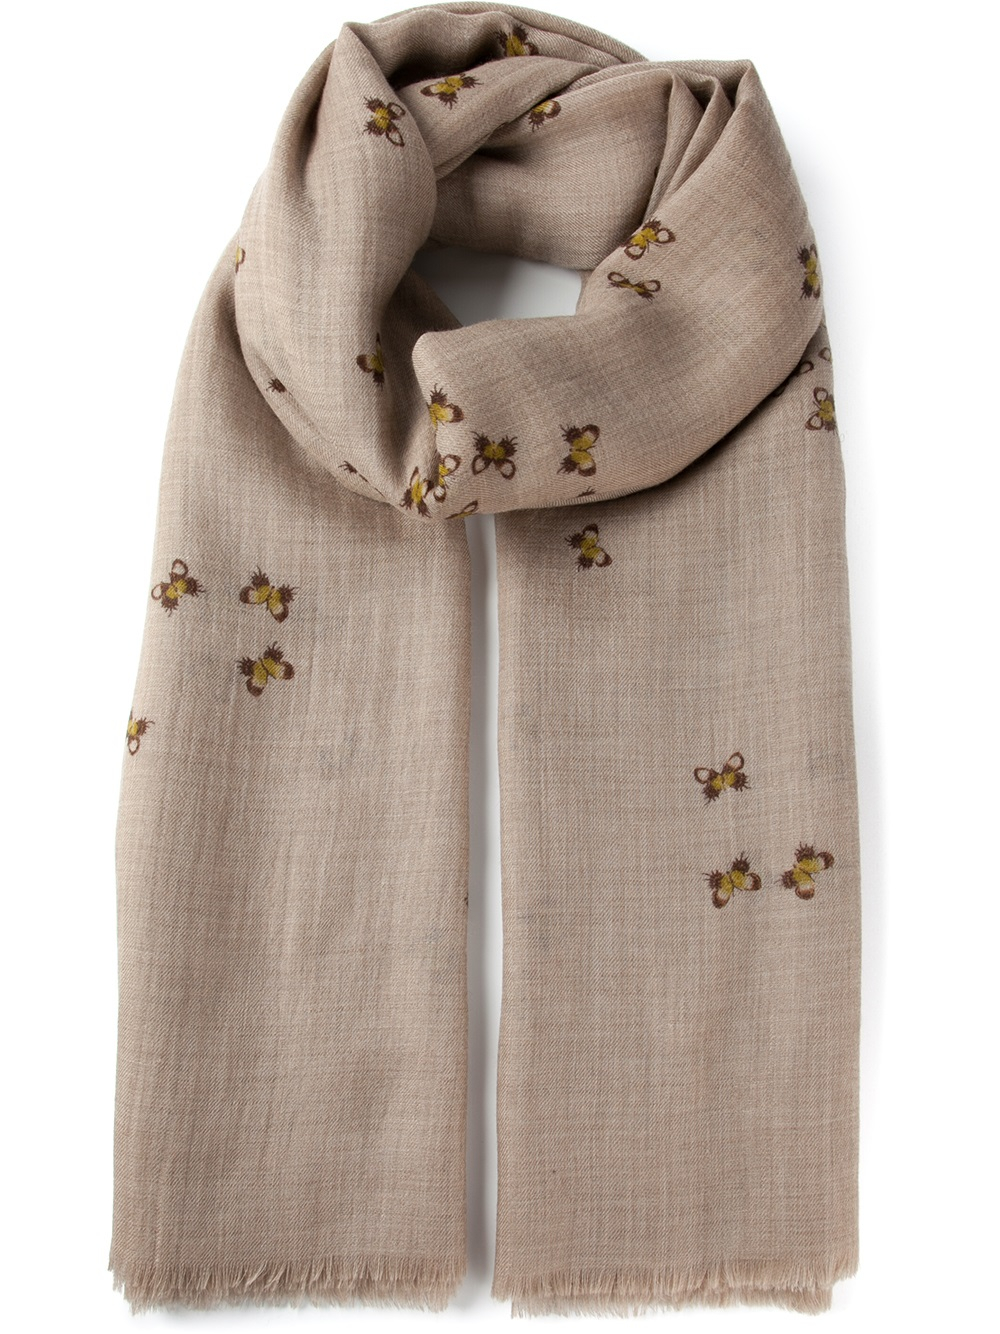 8671e4607d34 Bottega Veneta Printed Scarf in Natural - Lyst